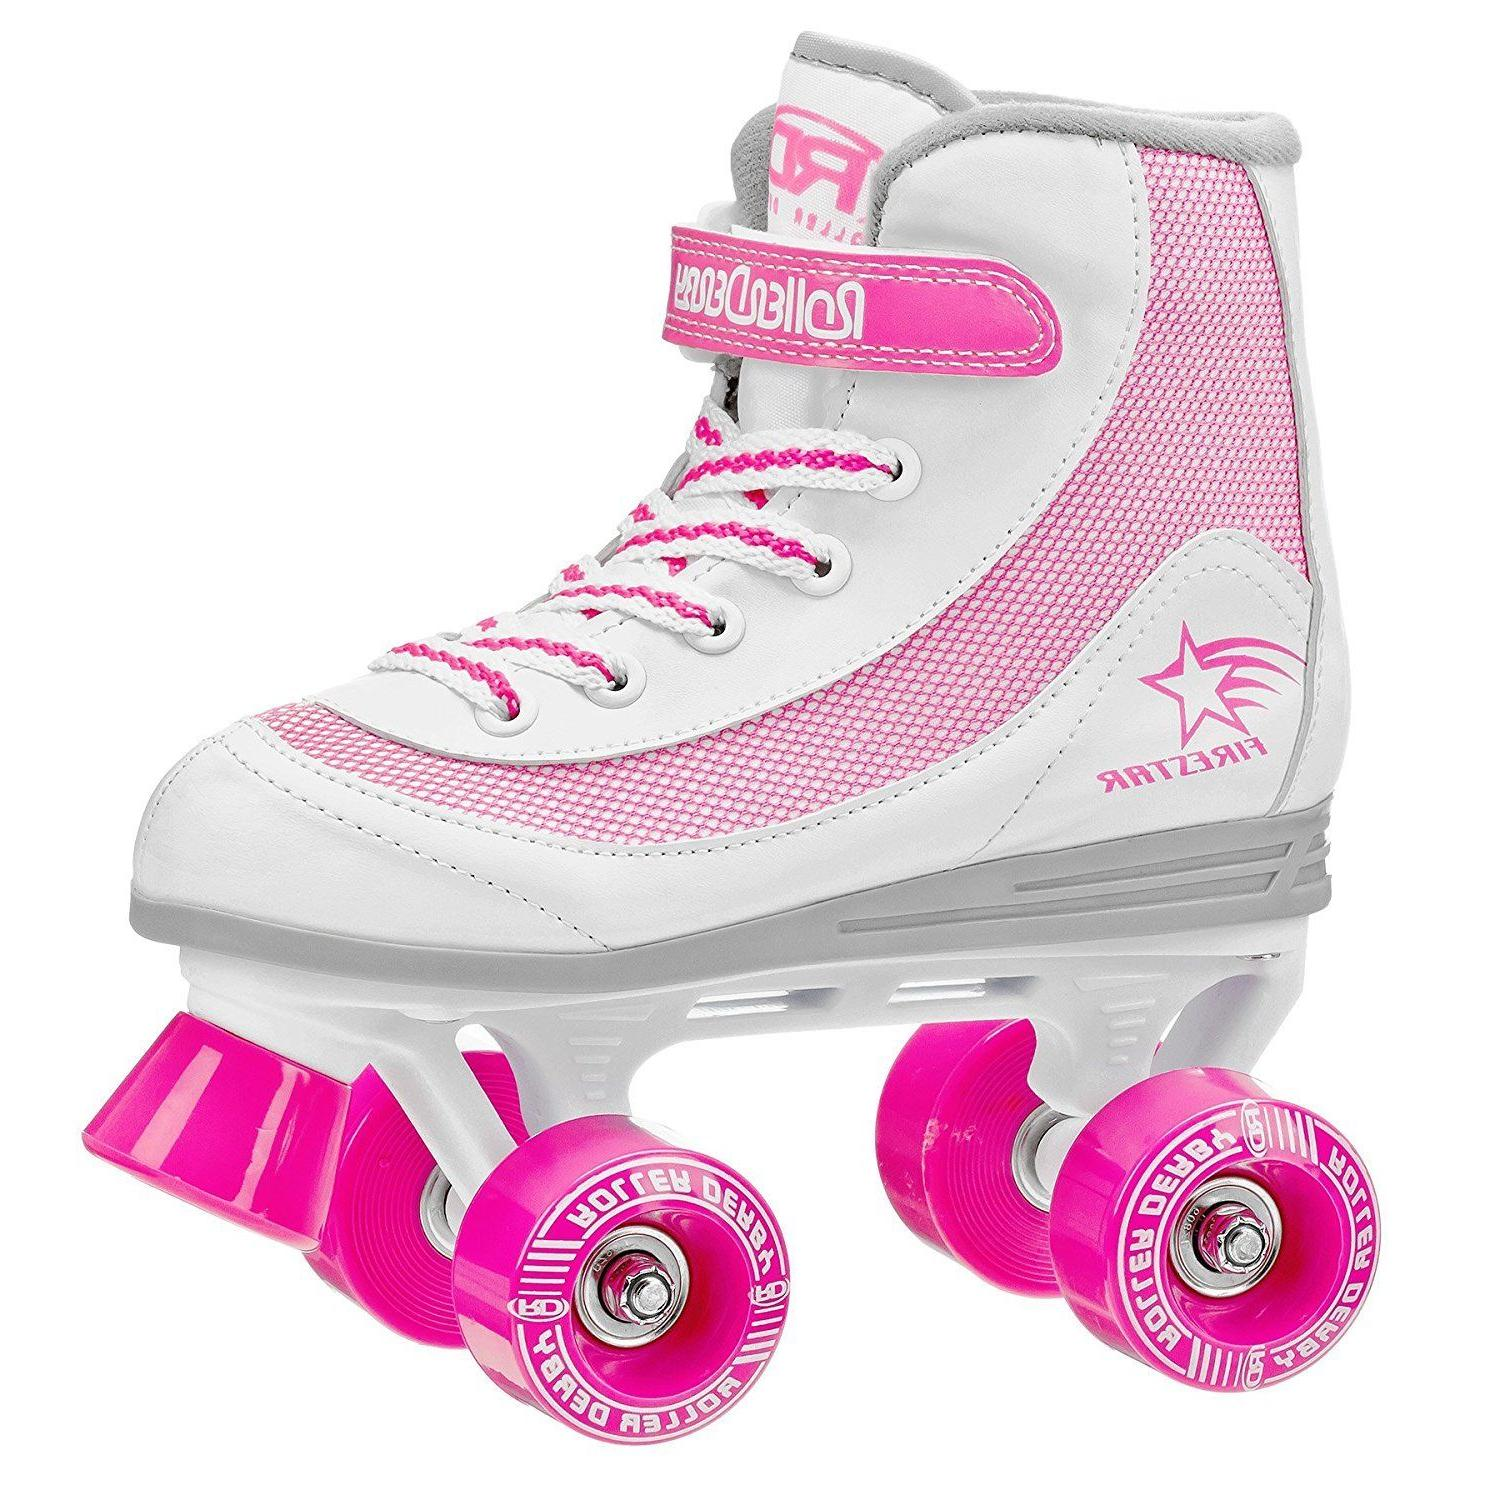 Roller Girls 1 Size 13 Outdoor